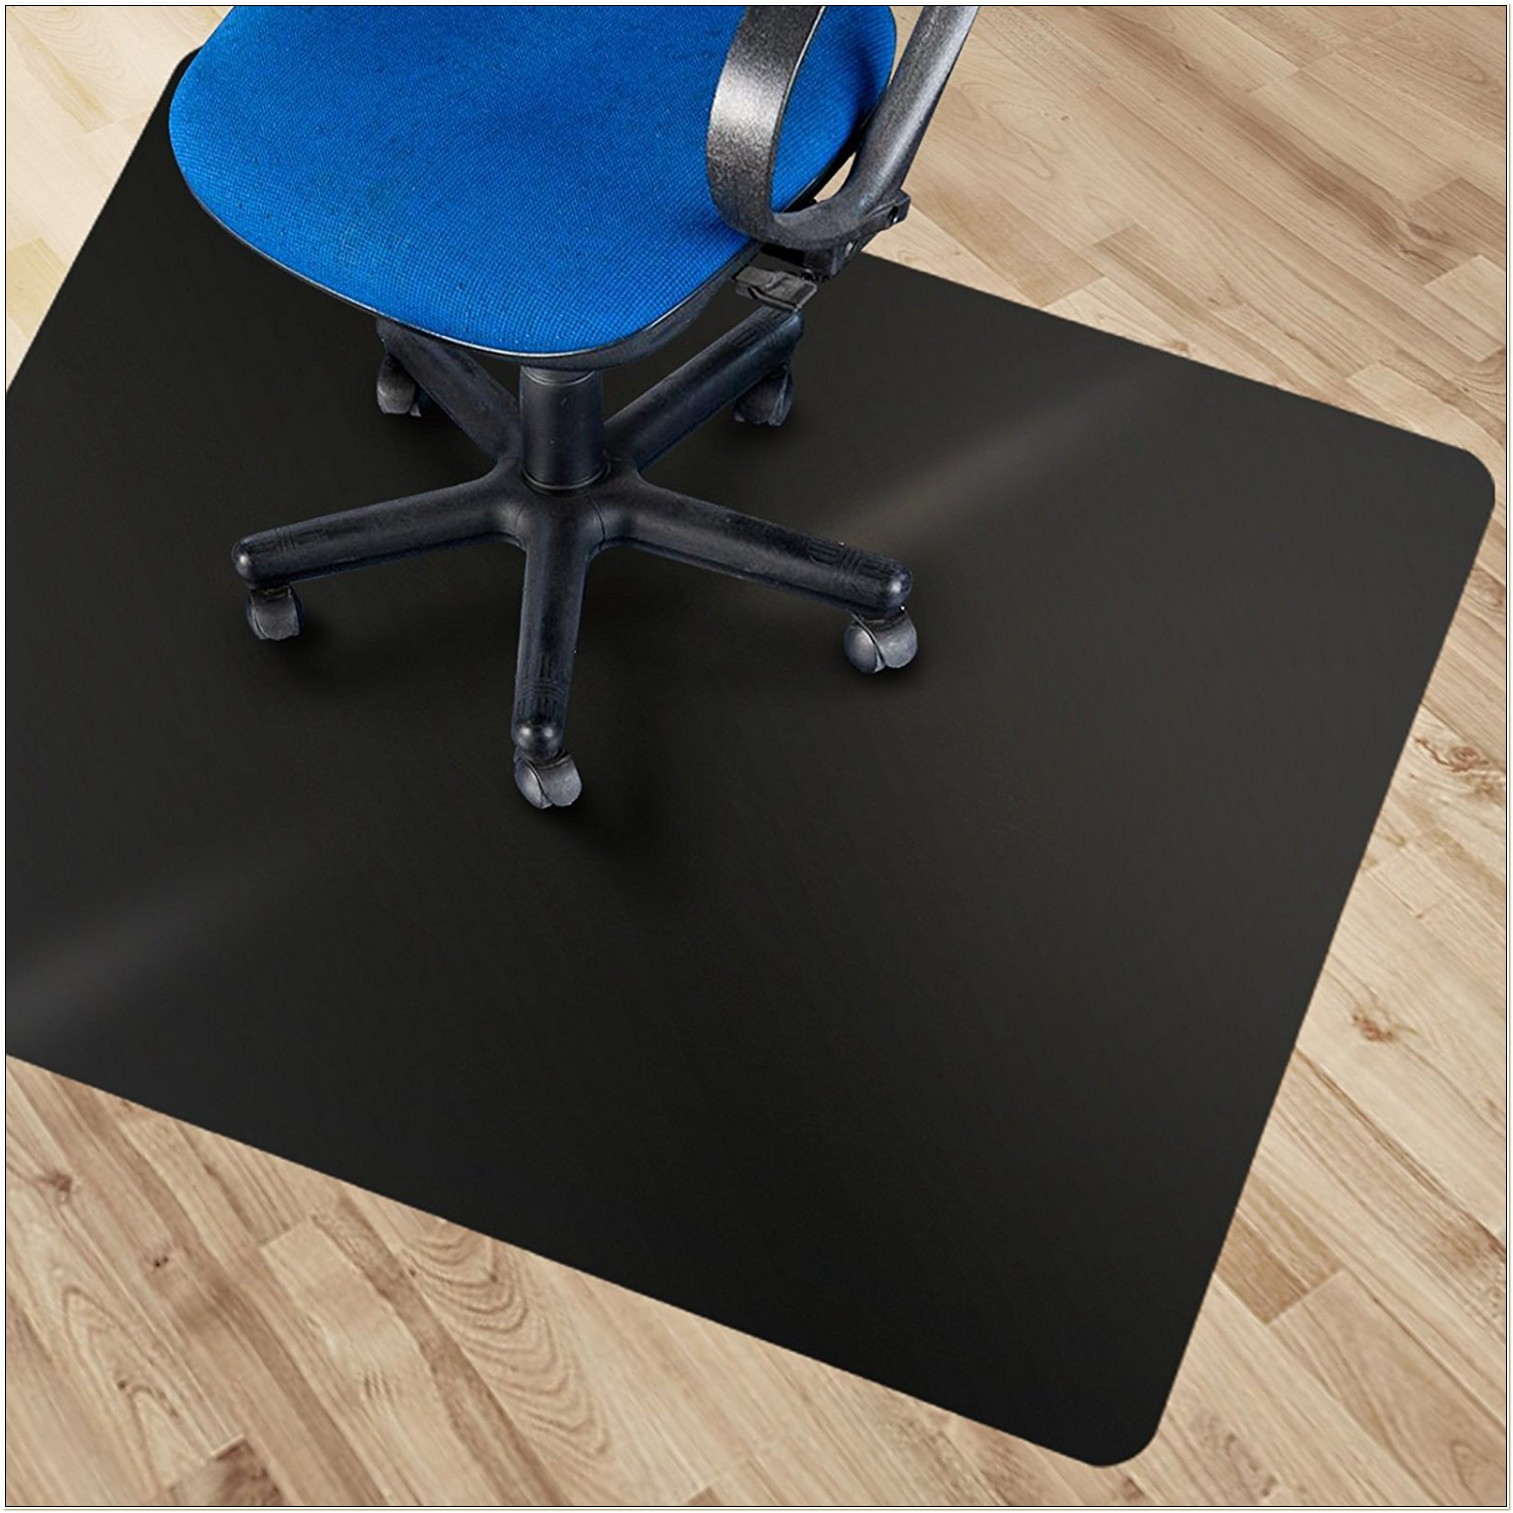 Plastic Chair Mats For Carpet Walmart